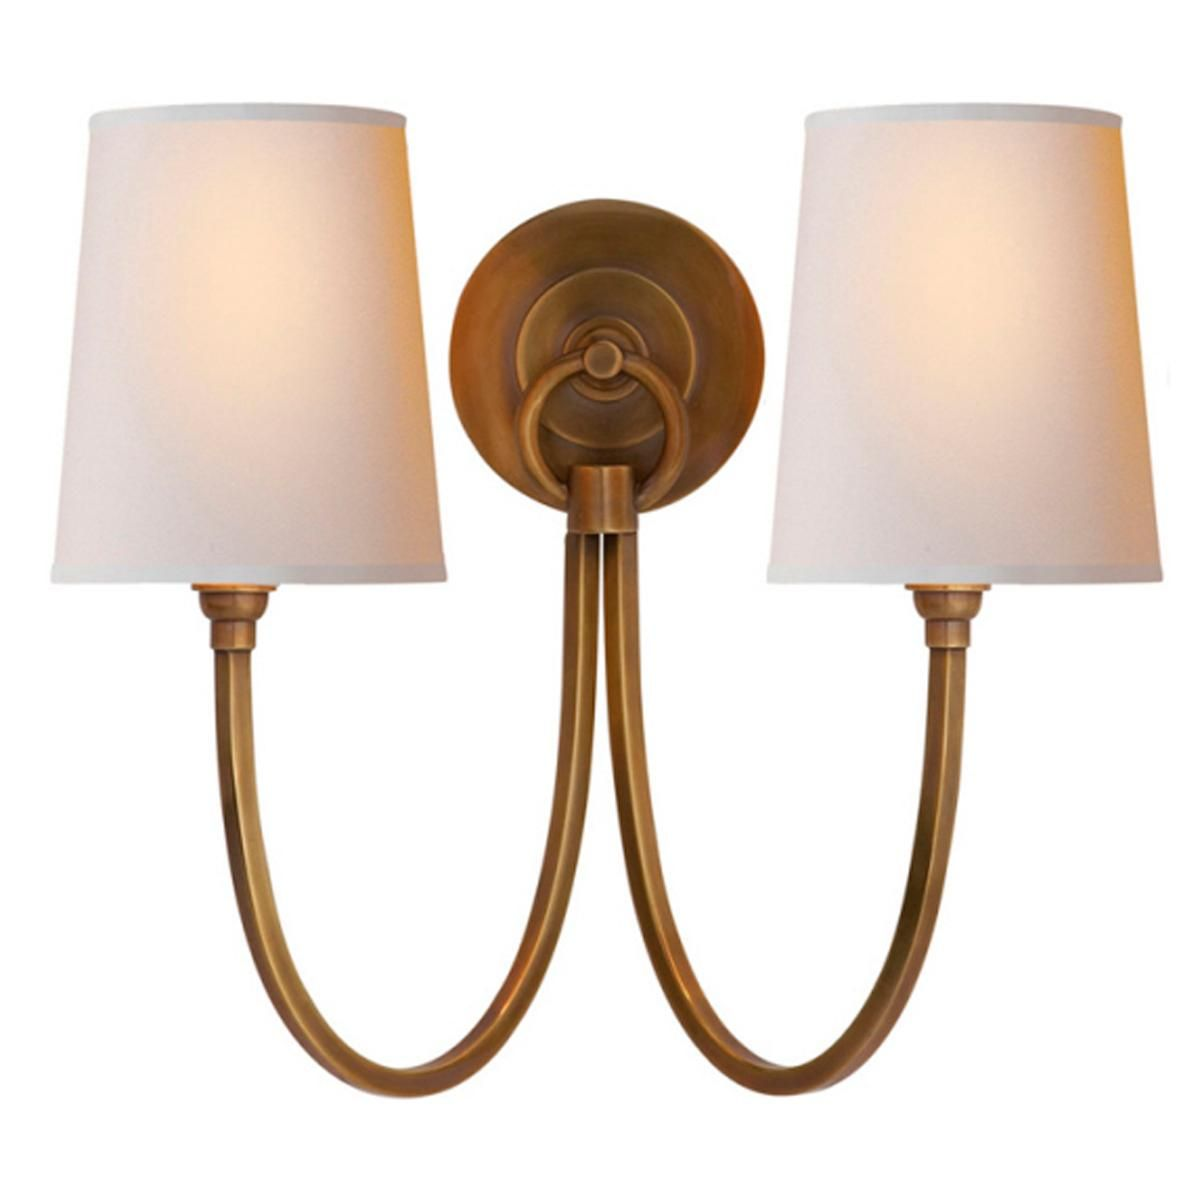 Double Swag Sconce   2 Light   4 Finishes Will Be In Bathroom/shower Room  With Polished Nickel Finish